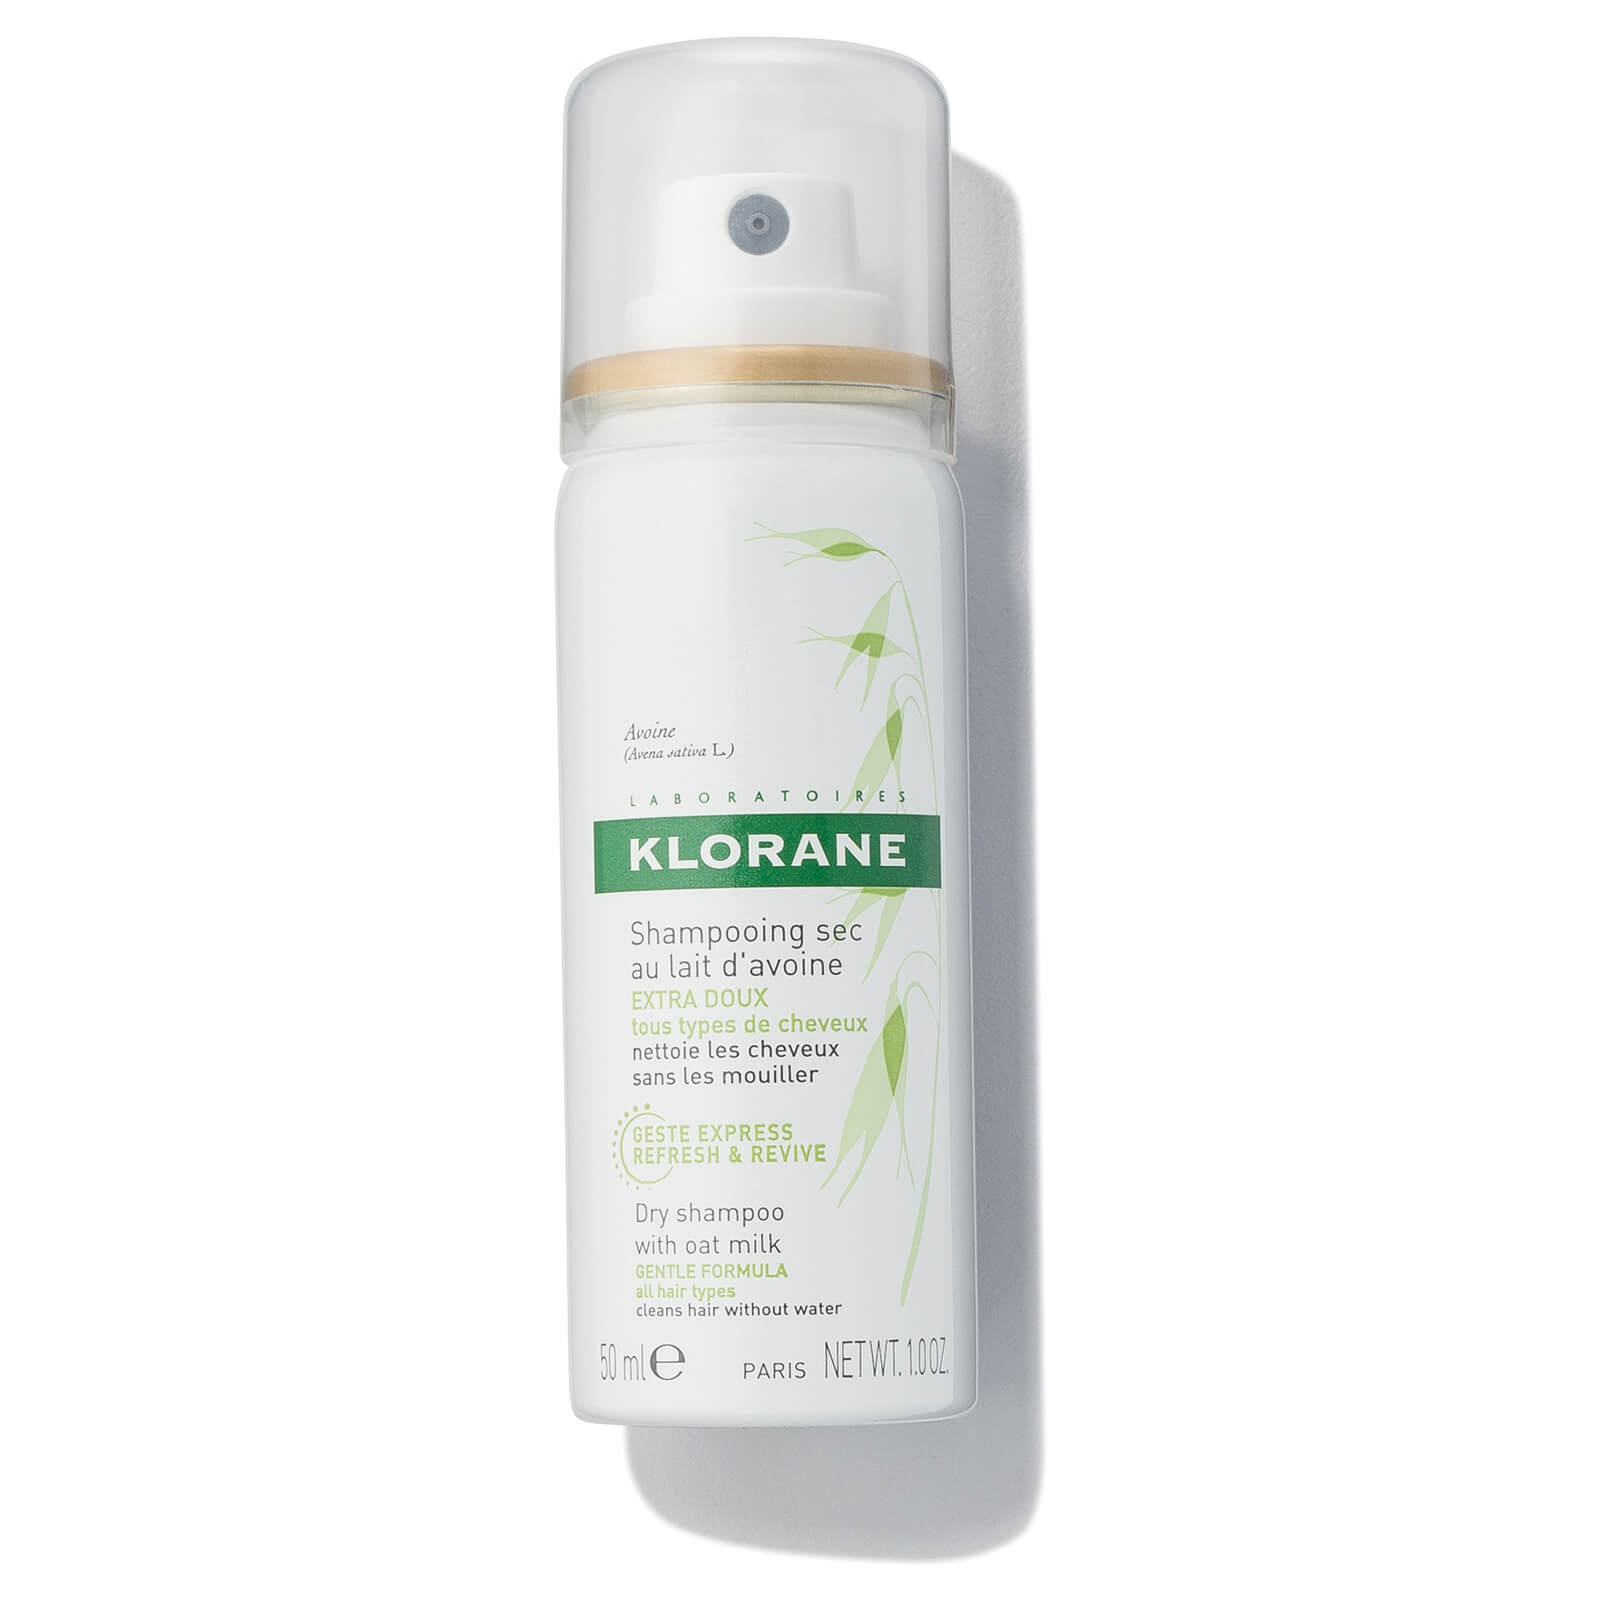 KLORANE Oatmilk Dry Shampoo Spray 1.0oz